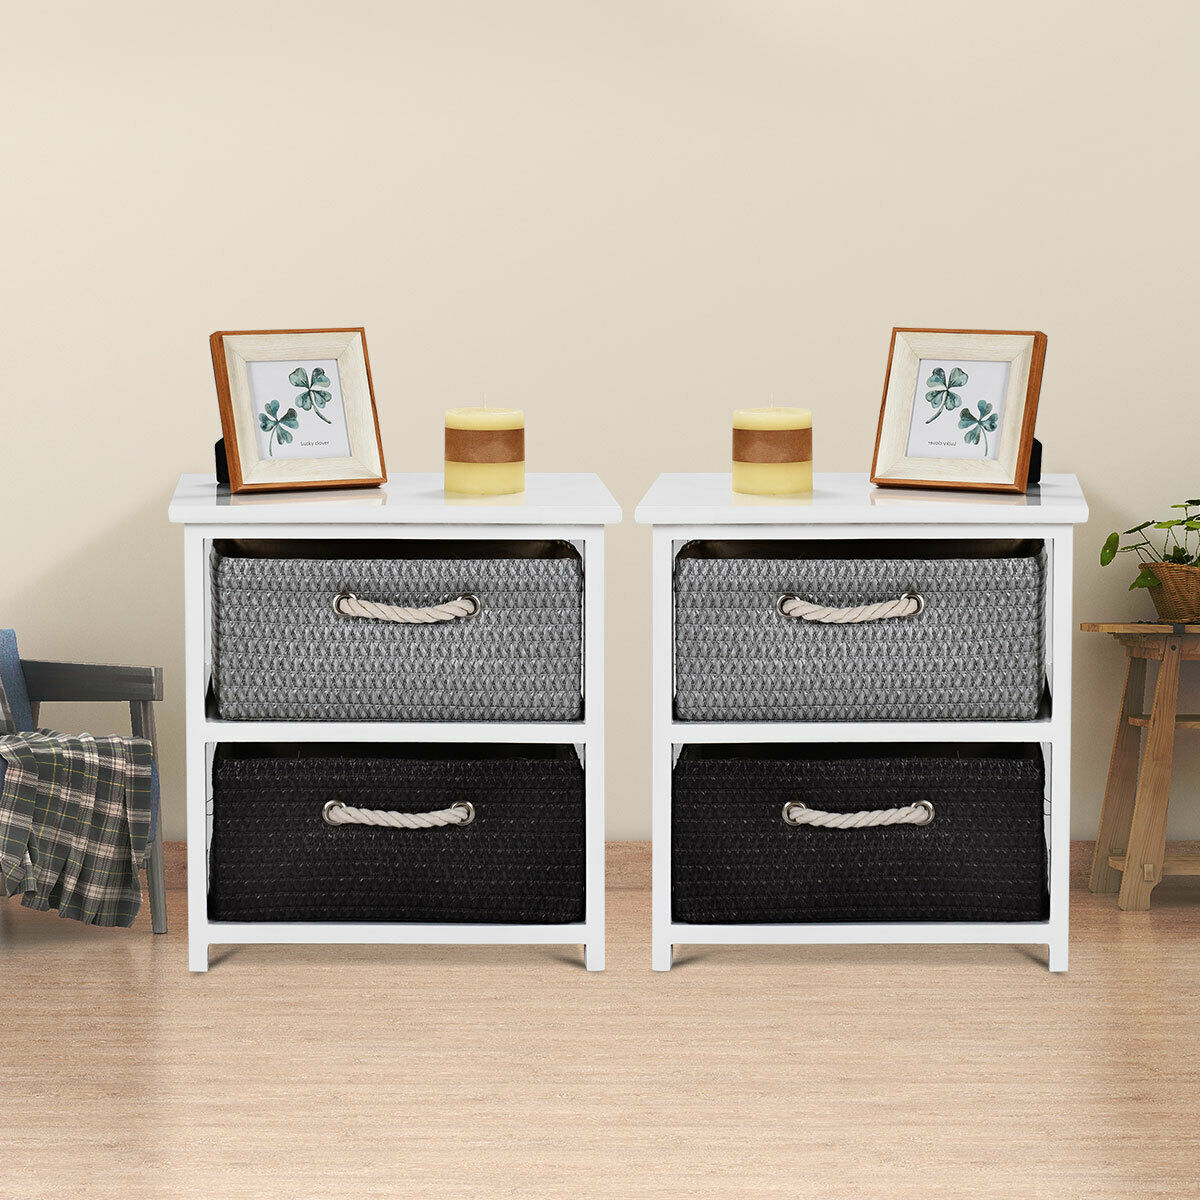 Gymax 2PC Wooden Nightstands 2 Weaving Baskets Bedside Table Storage Organizer Side Table - image 9 de 10